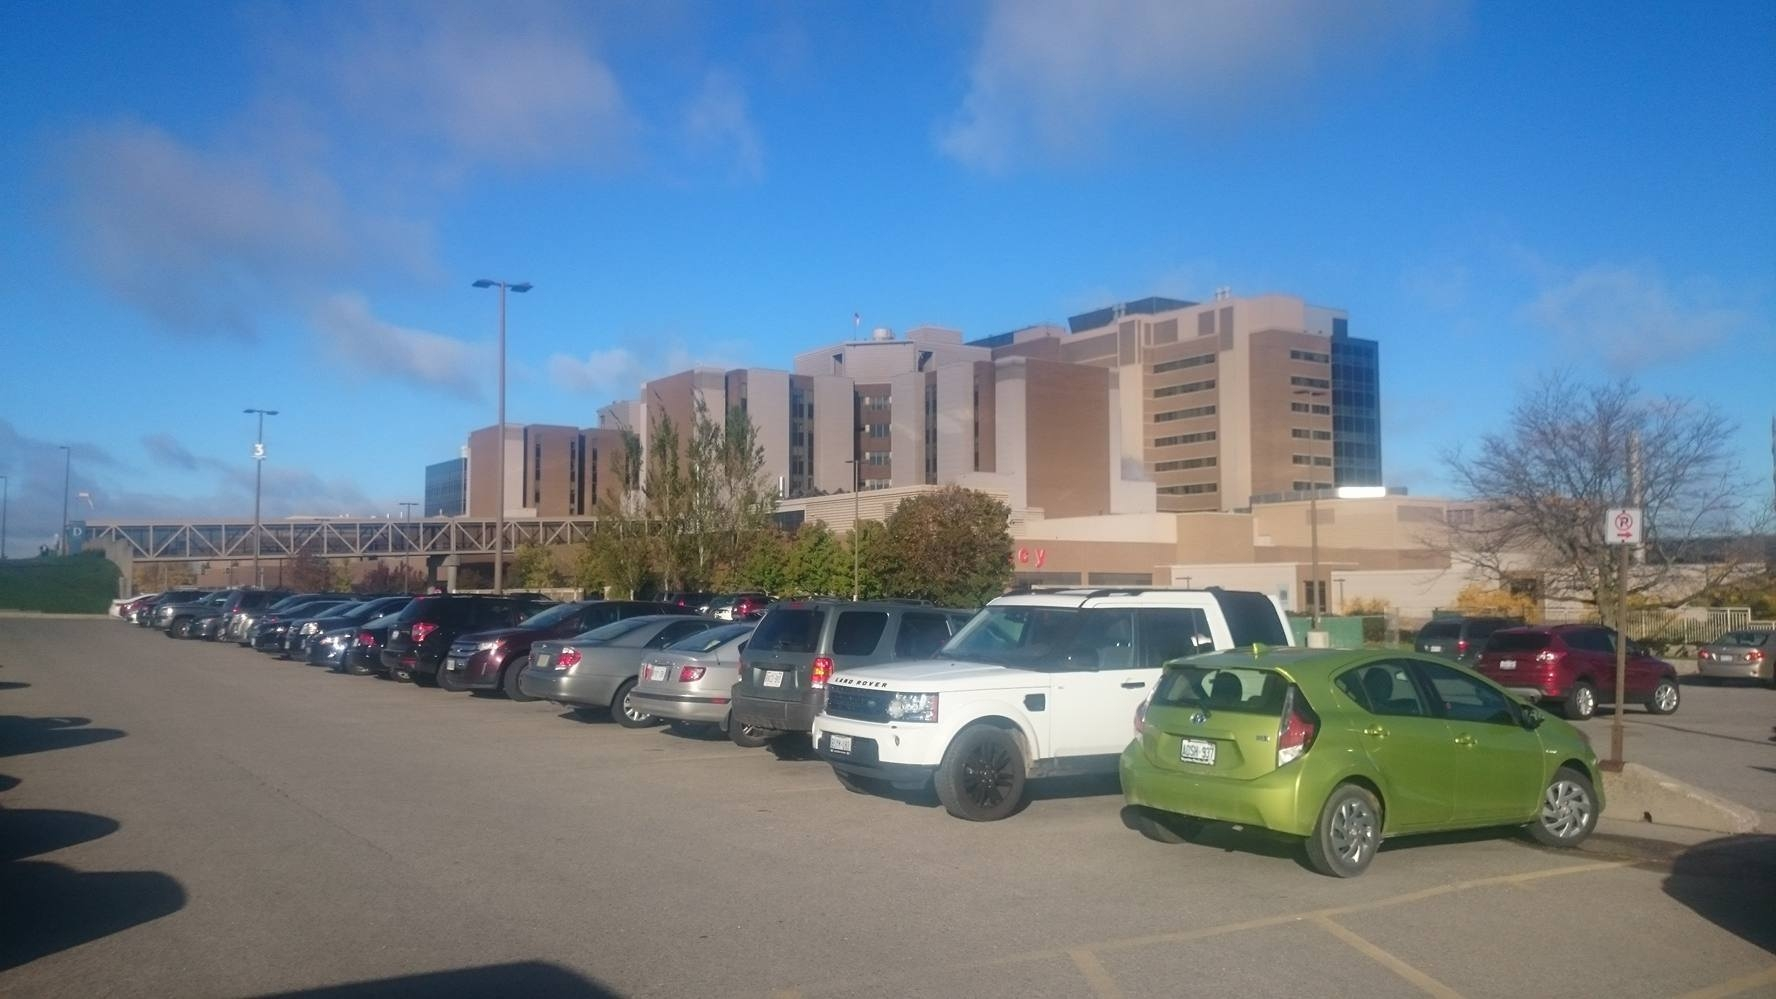 Should Hospital Parking Be Free?